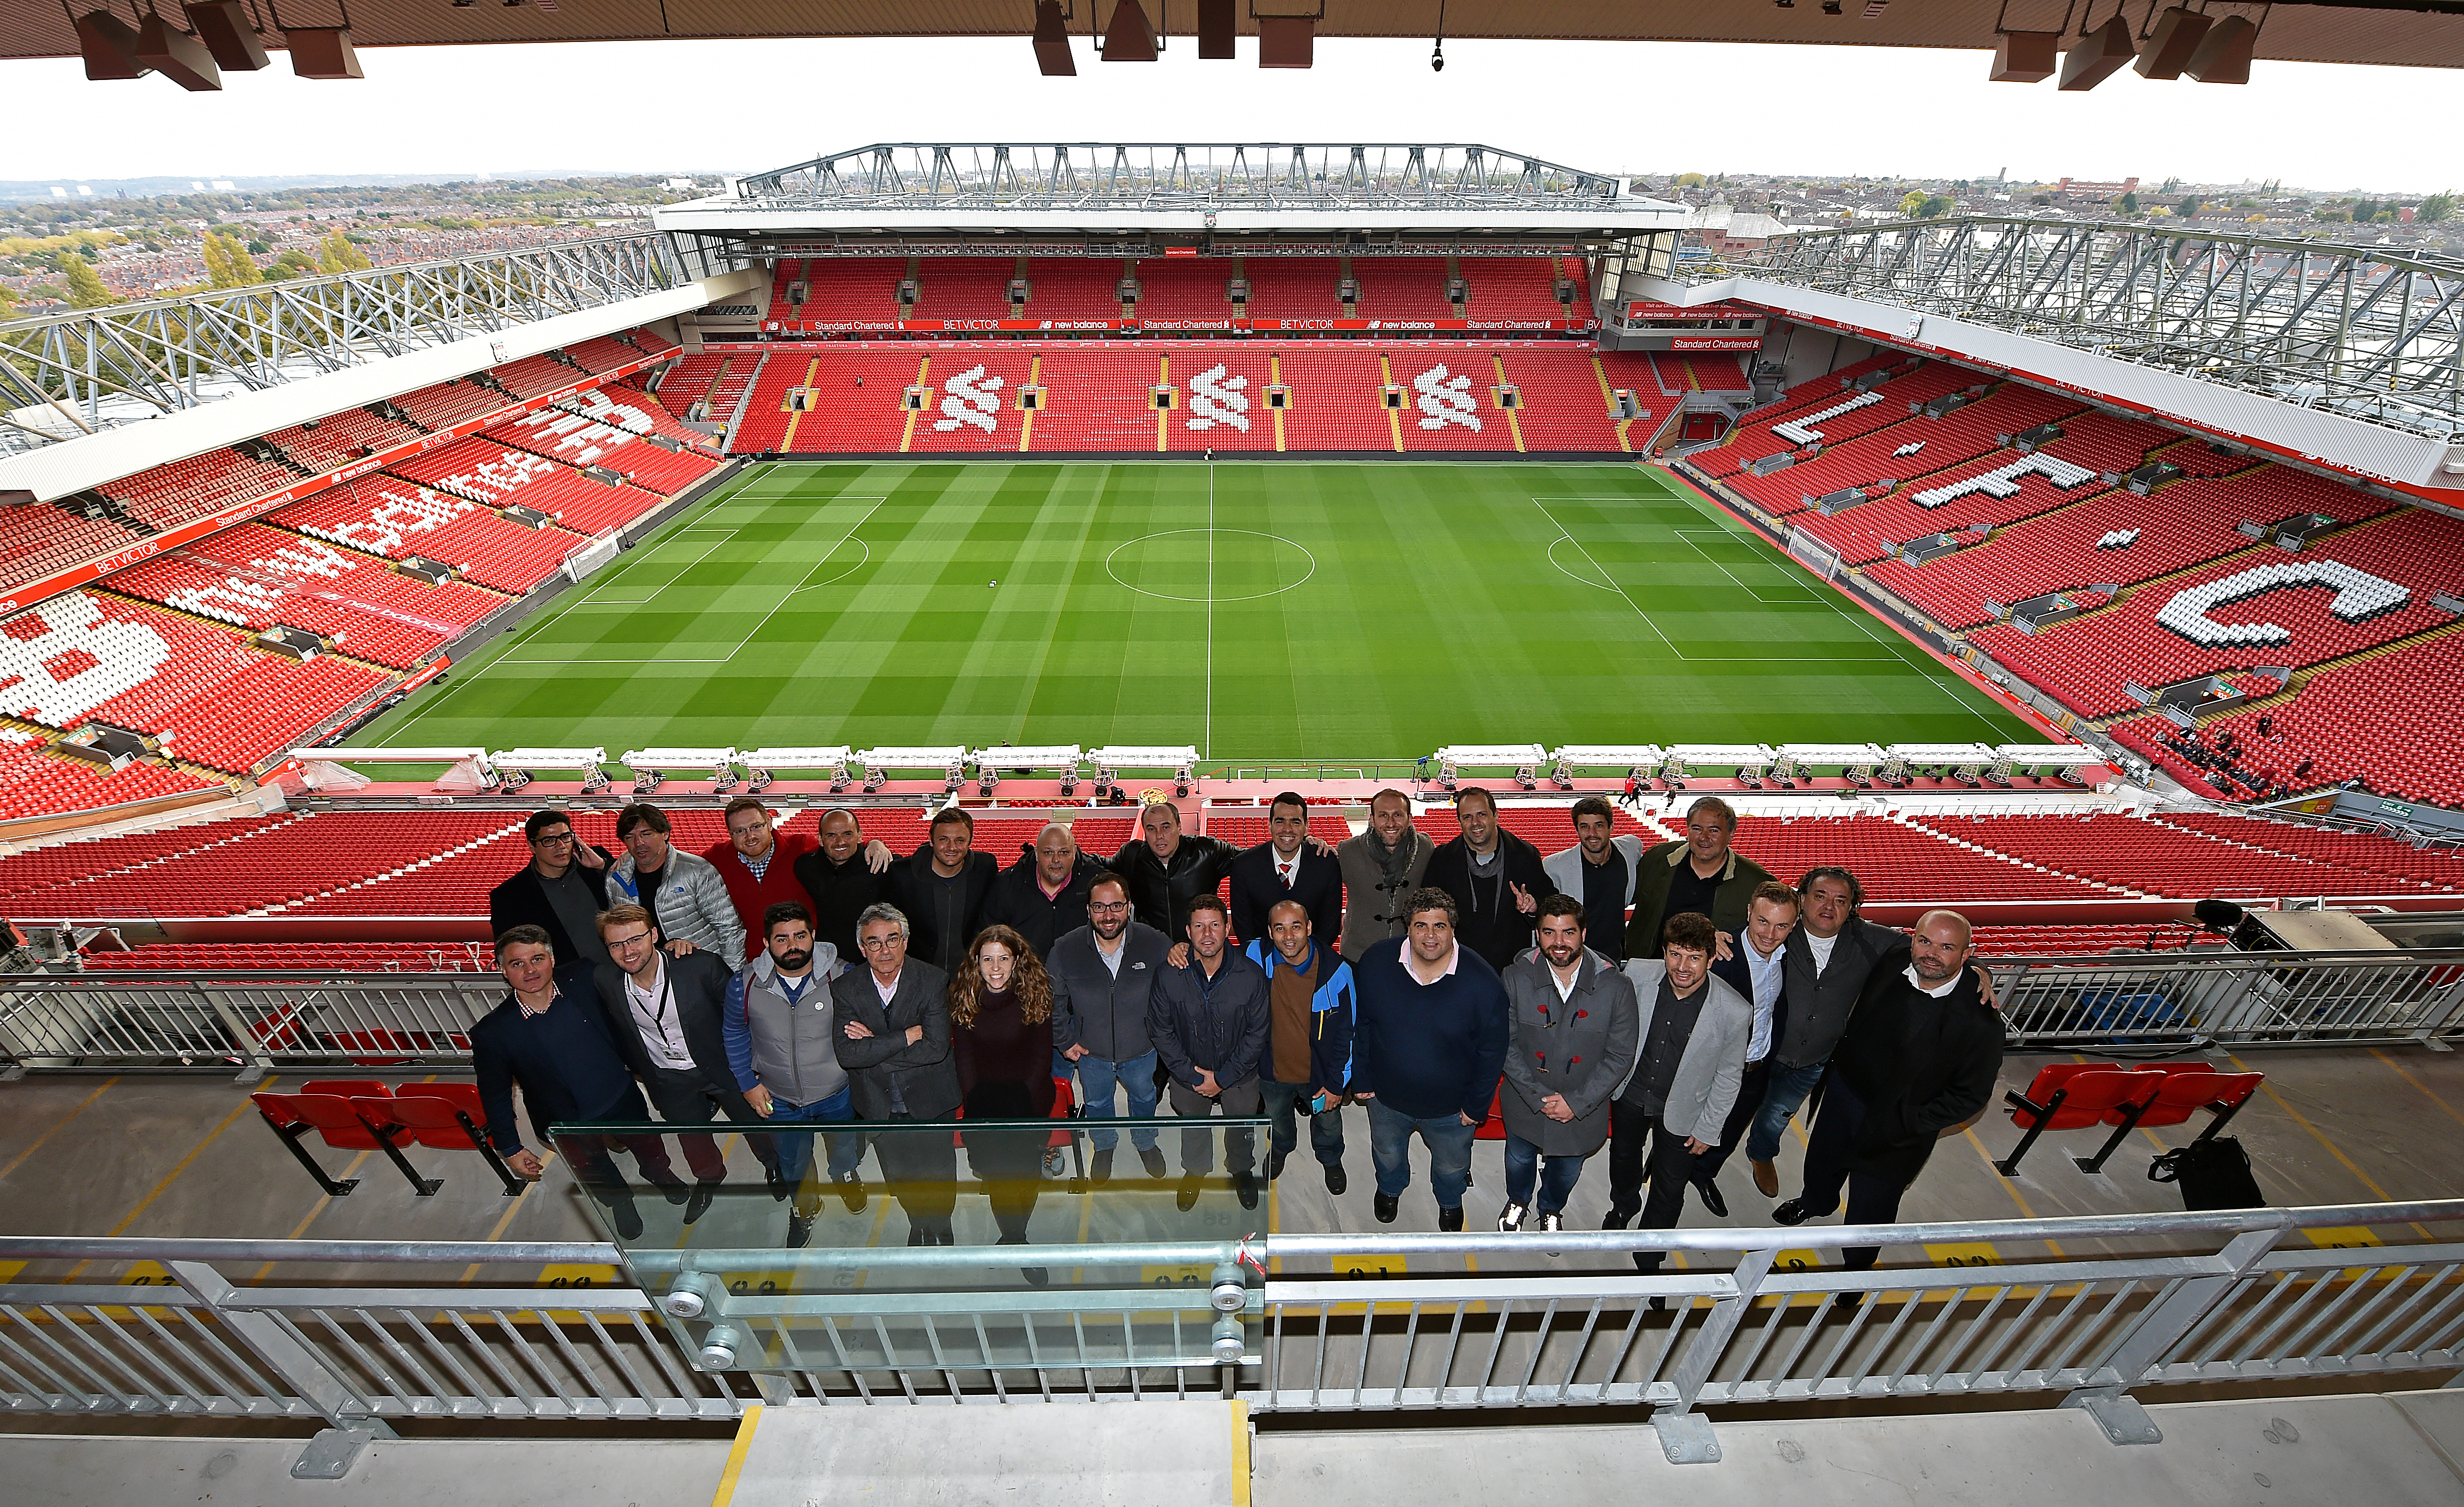 22.10.16 Delegate Anfield Tour 01